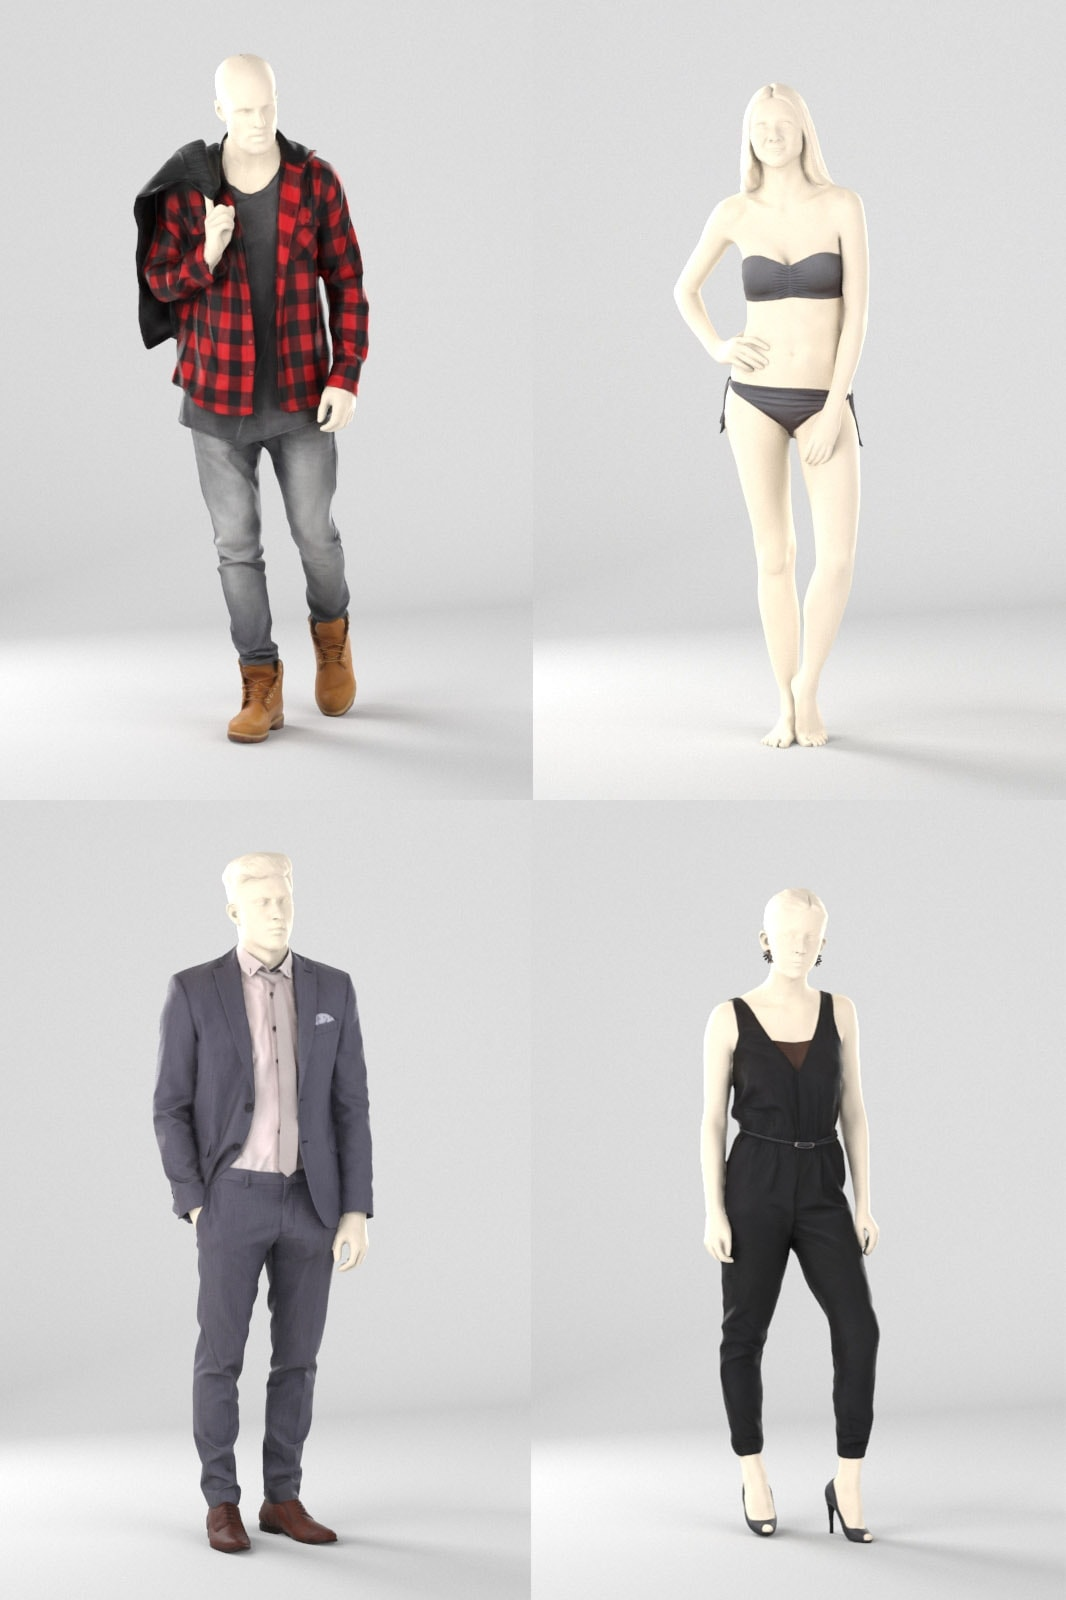 bundle of mannequins and display dummys, shopping 3d people